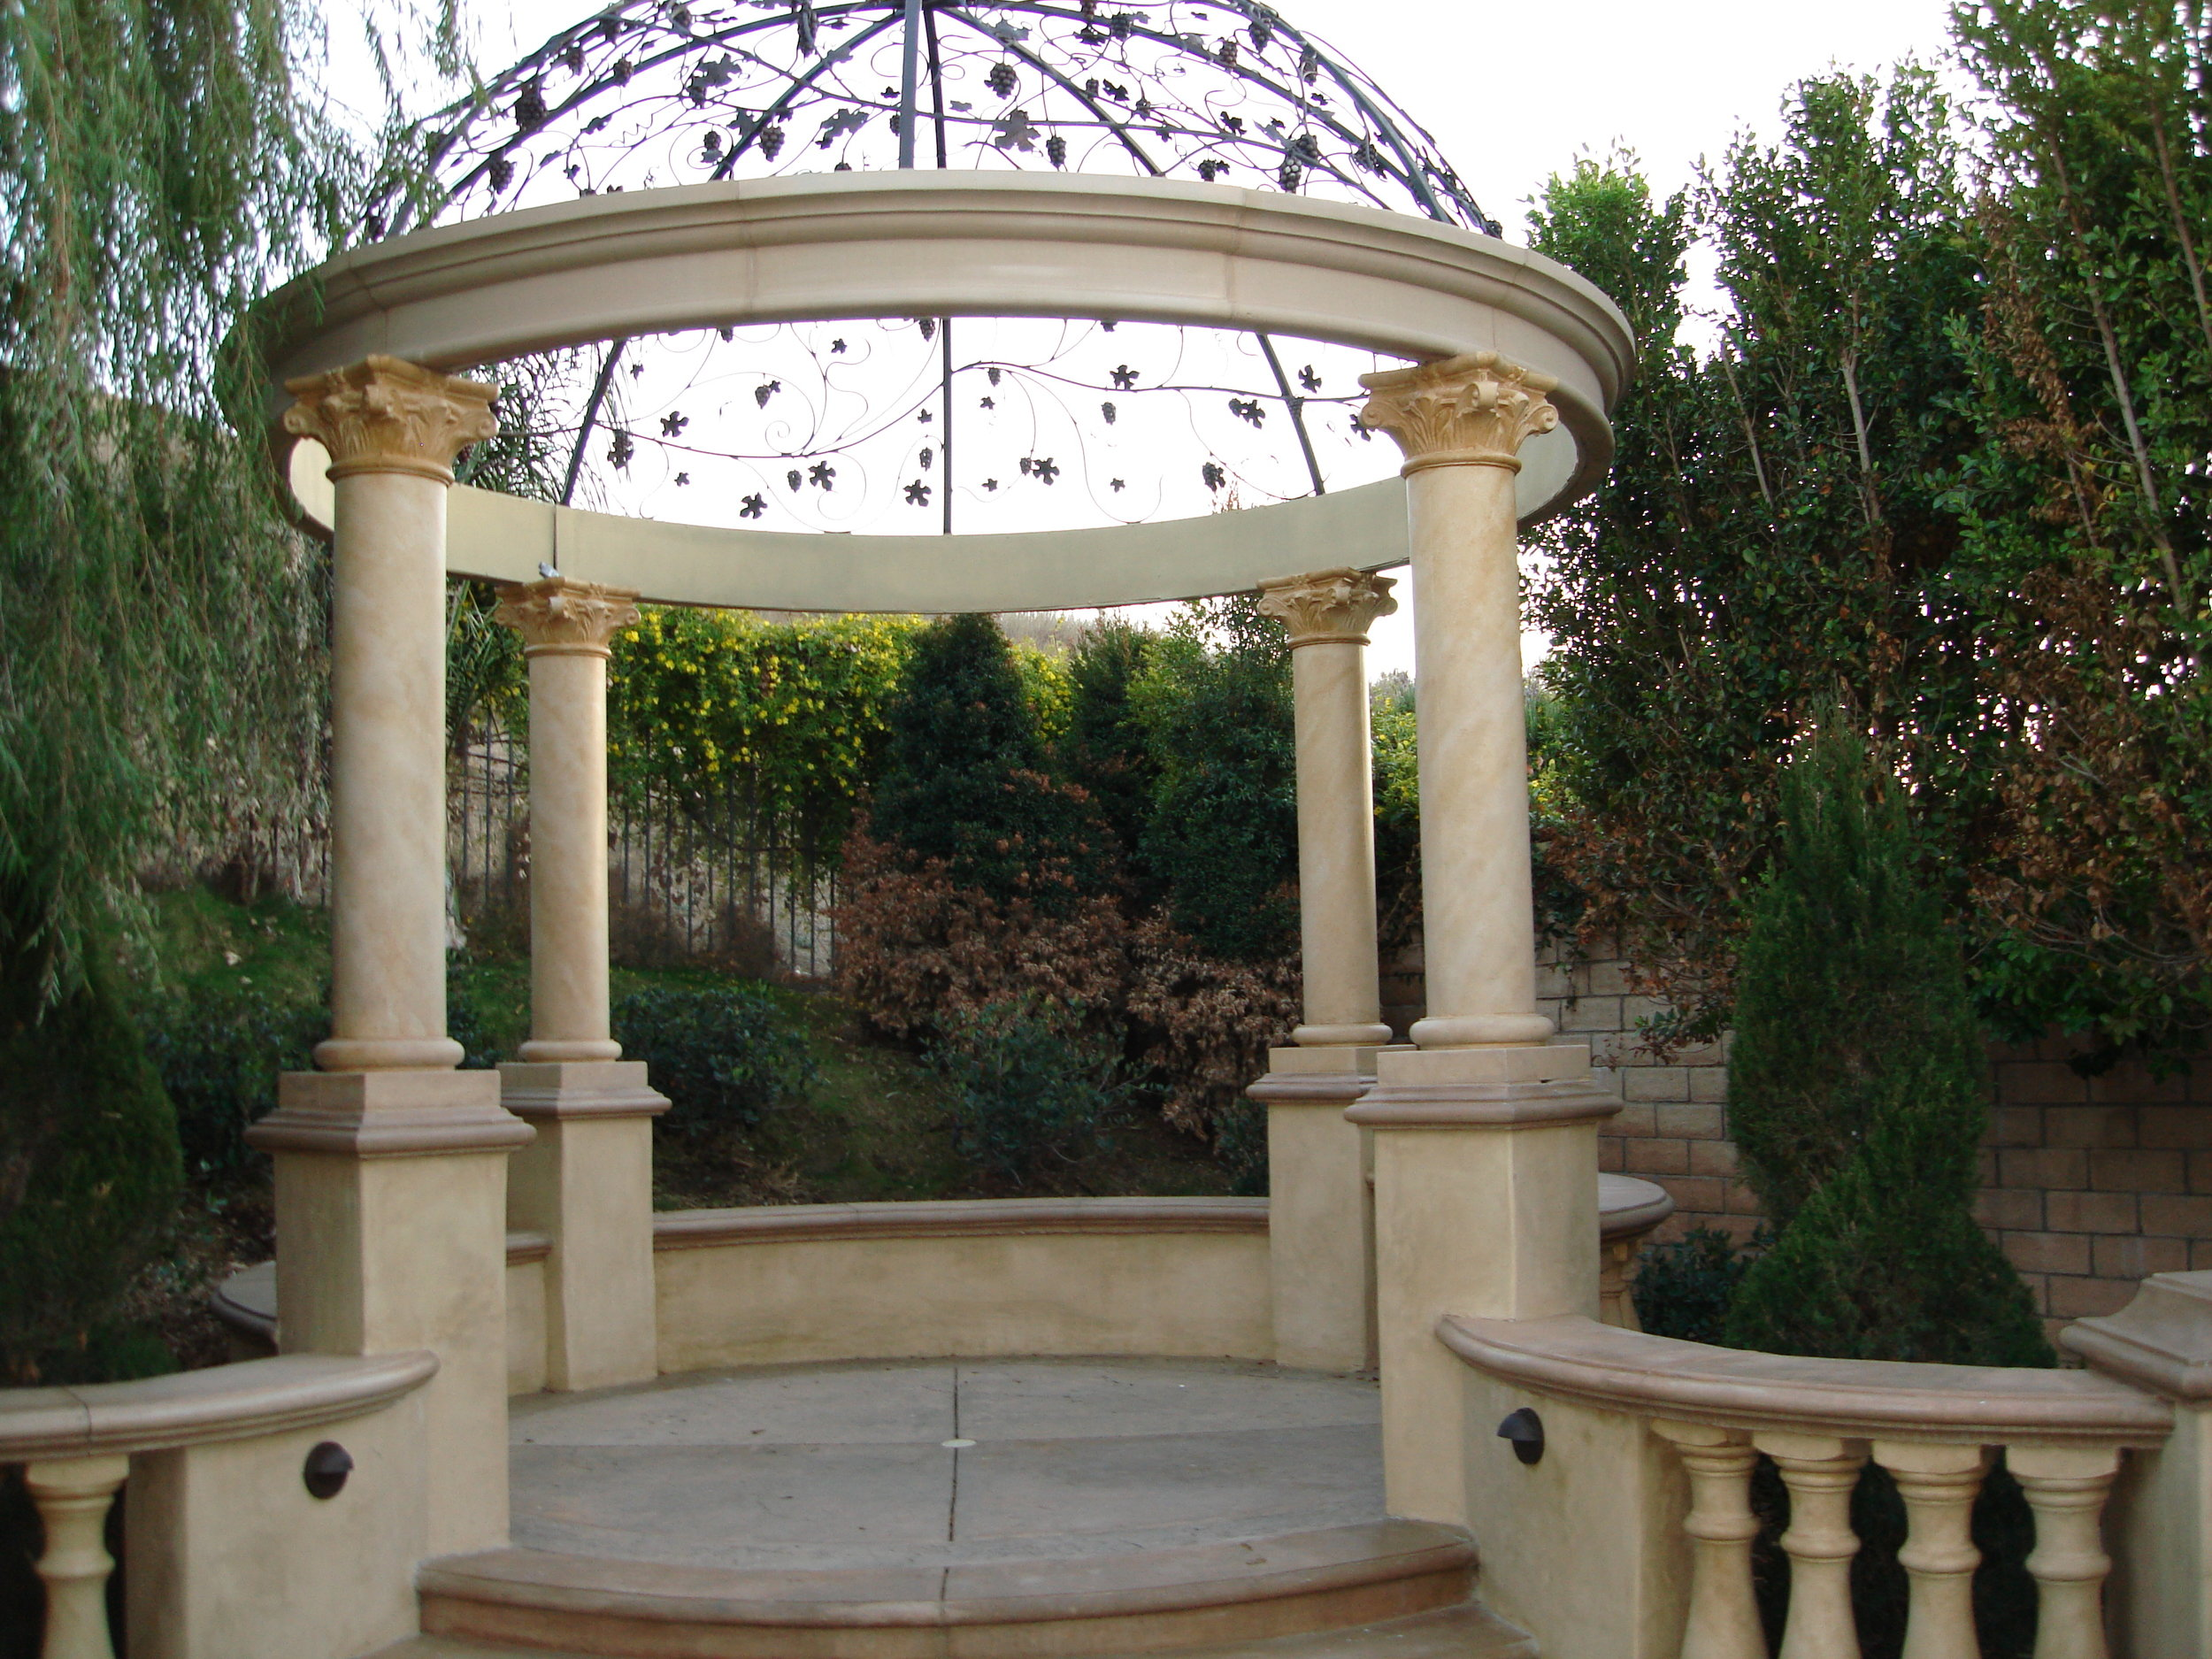 Antiqued_stone_gazebo.jpg